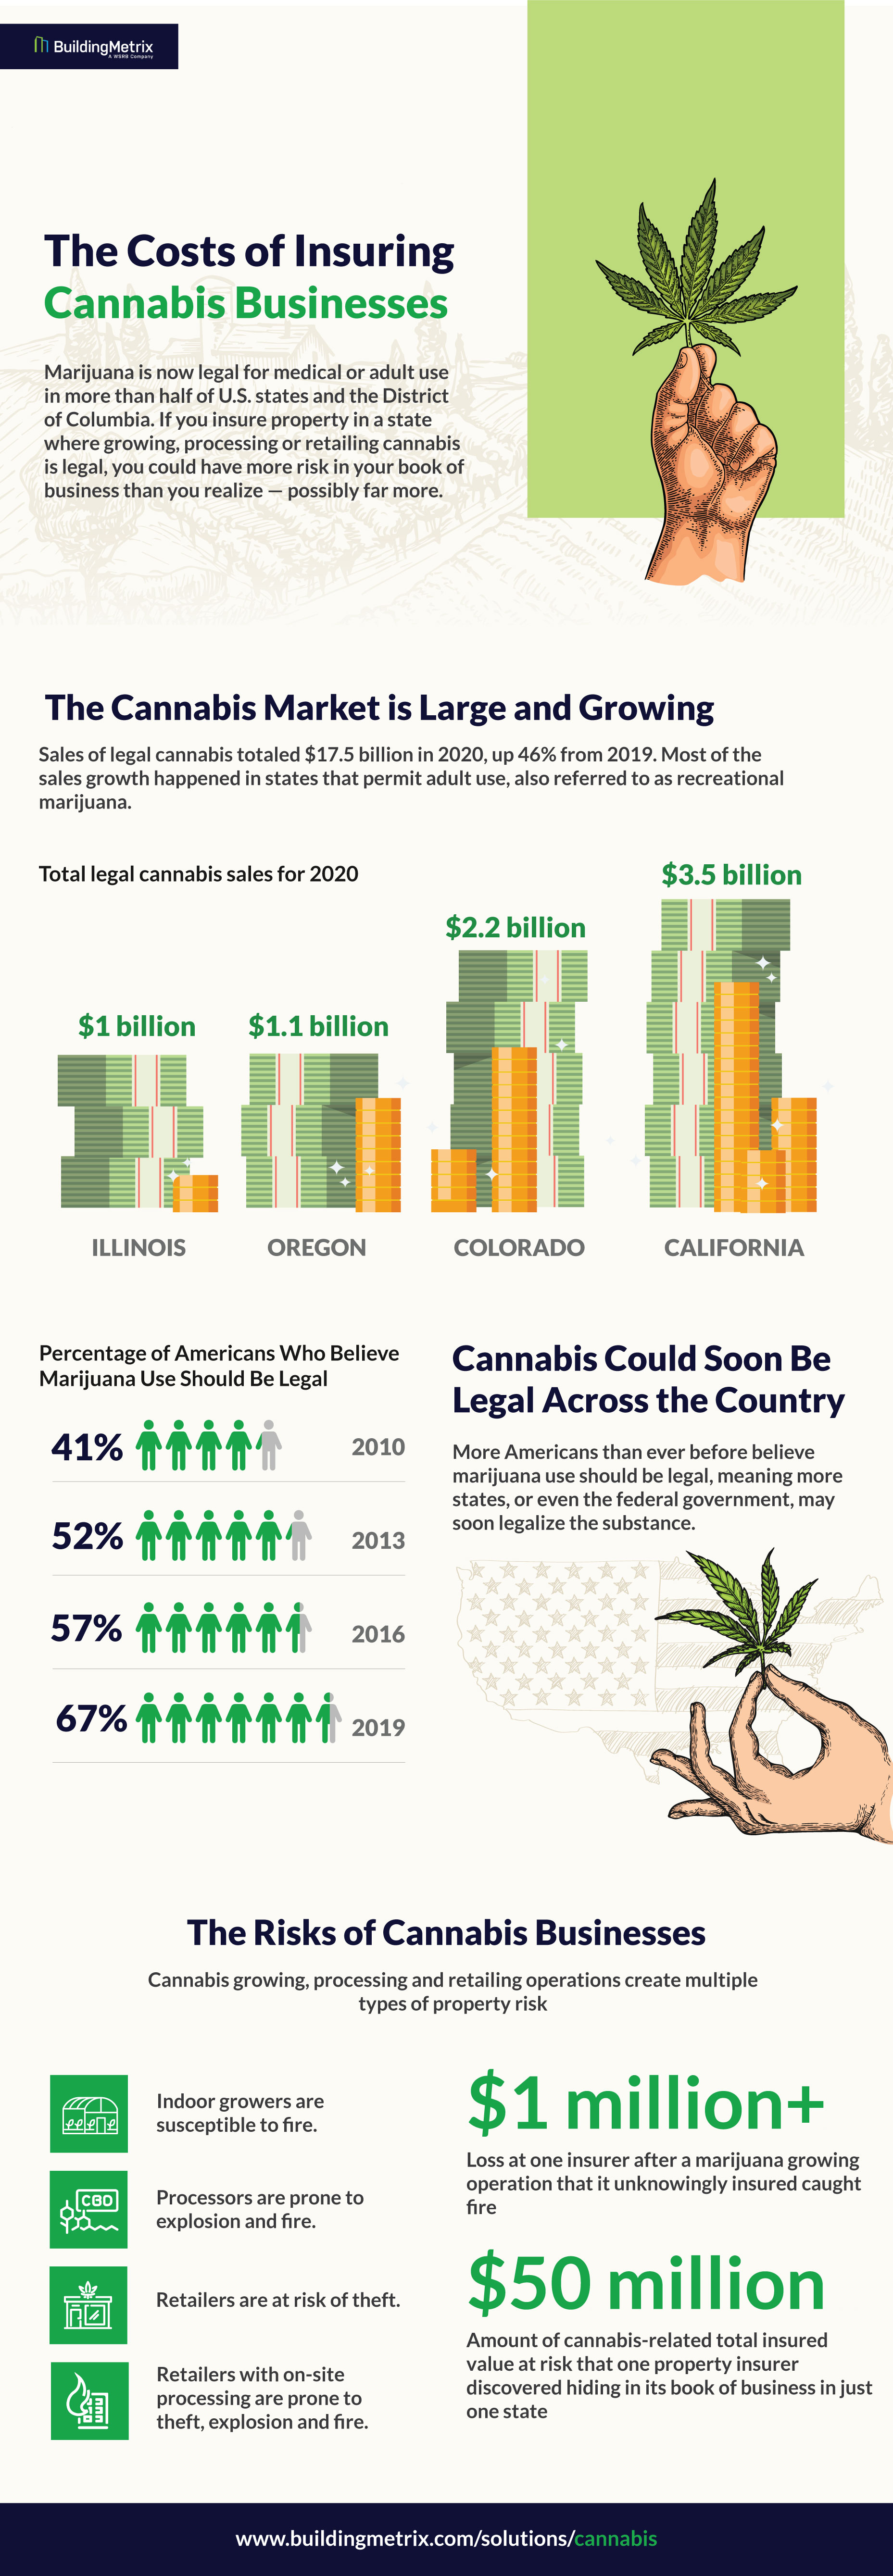 Infographic: The Costs of Insuring Cannabis Businesses